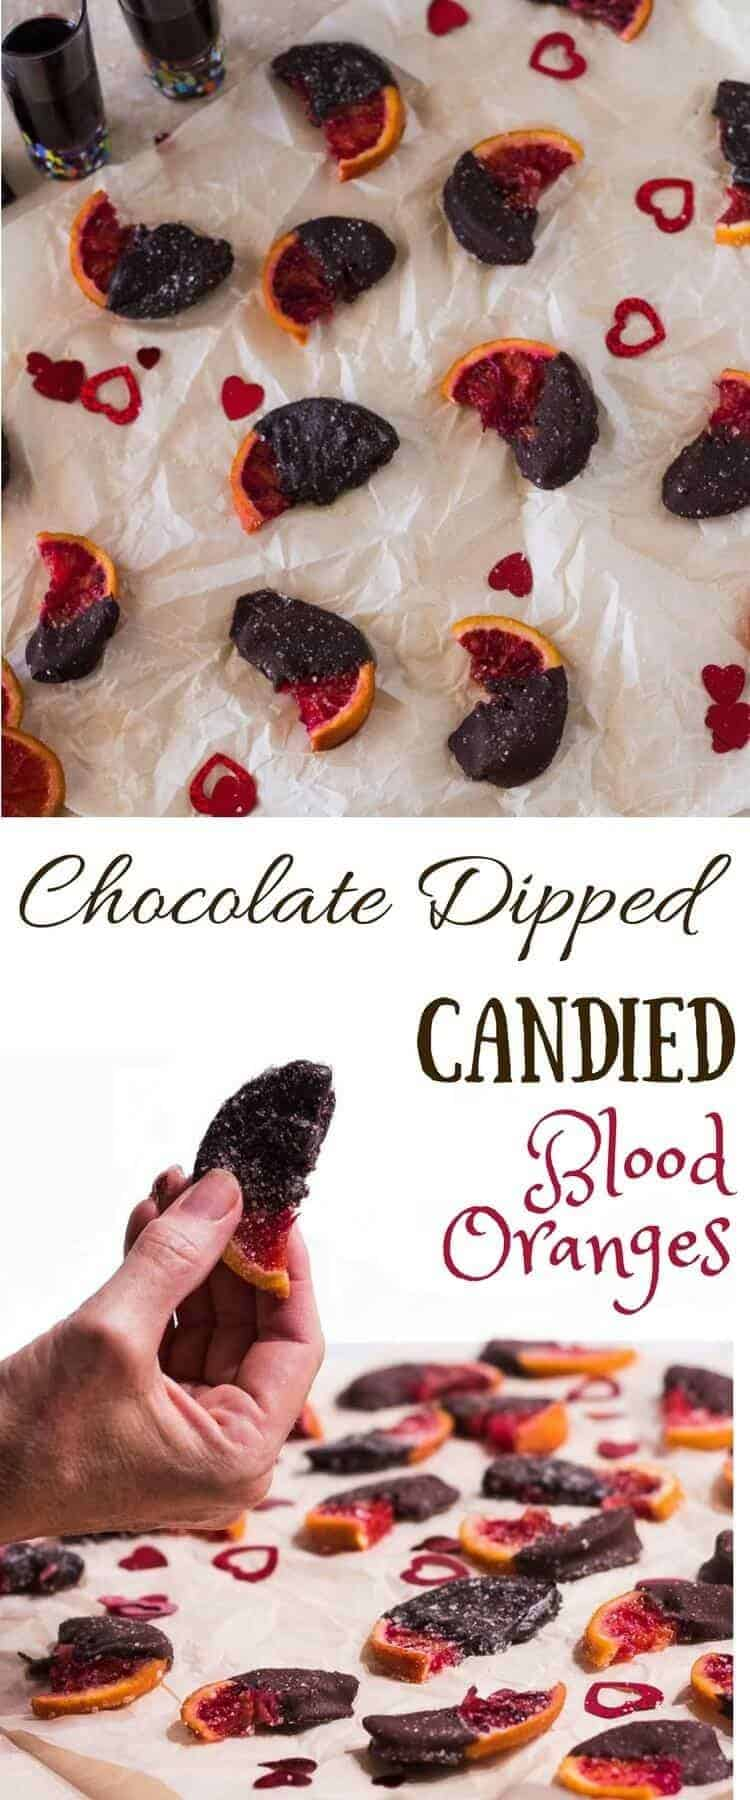 Chocolate Dipped Candied Blood Oranges - beautiful, rich, sweet, salty treat... perfect for your loved one on Valentine's Day! candied oranges   chocolate recipes   blood oranges   Valentine's Day treats